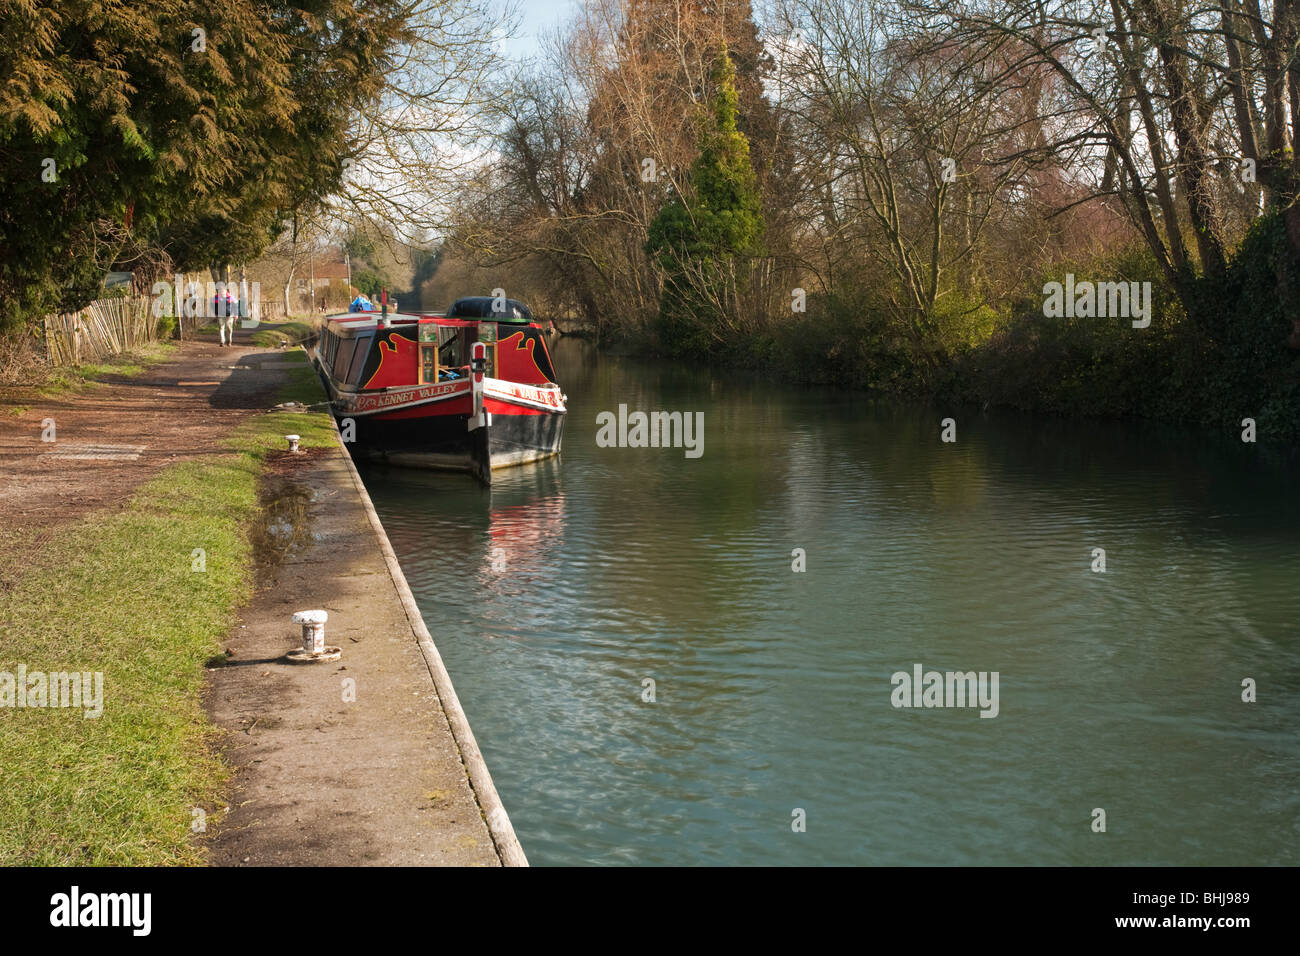 Barge moored on The Kennet and Avon Canal at Kintbury, Berkshire, Uk - Stock Image